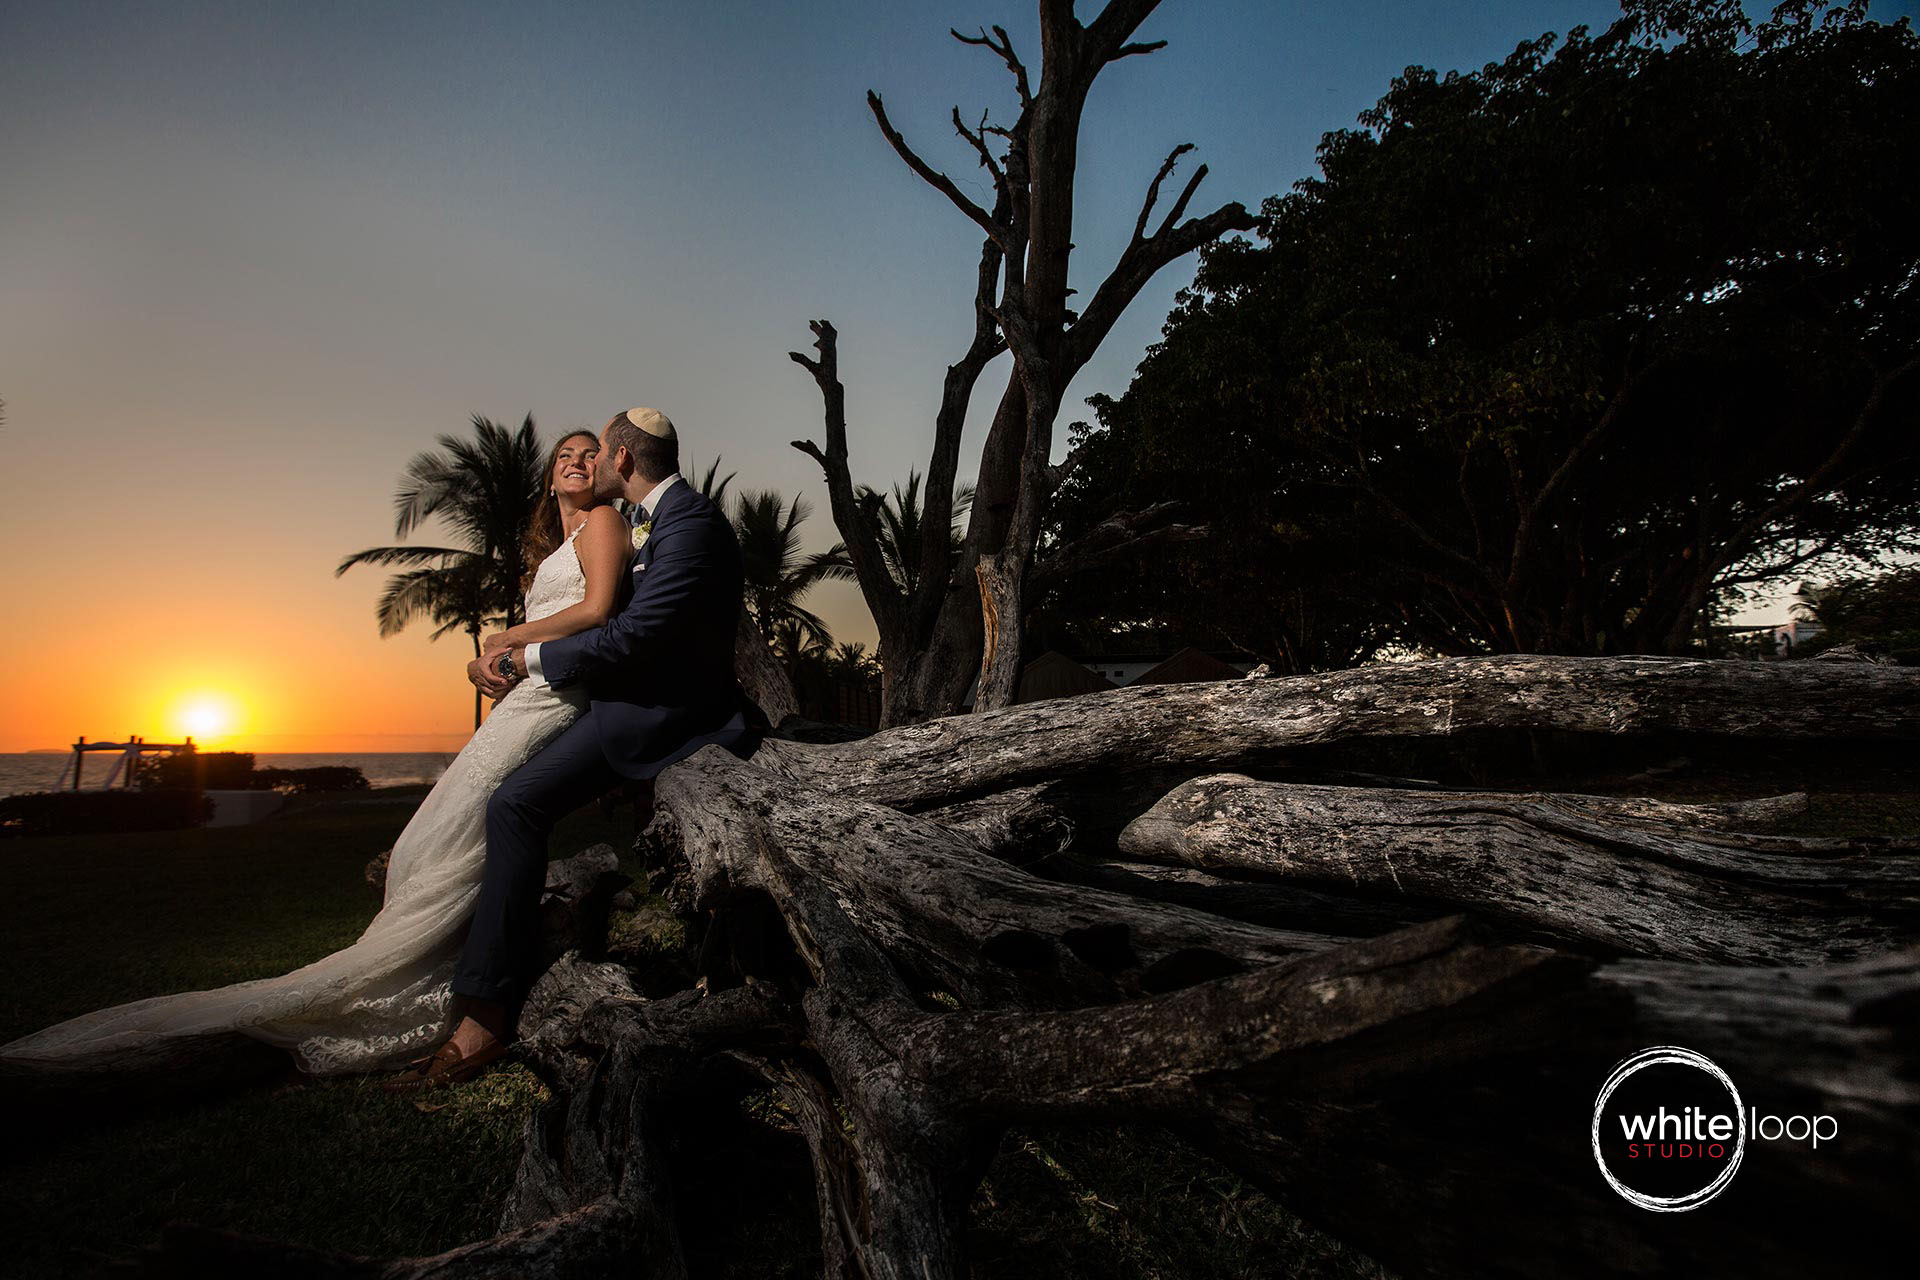 Bride and groom sitting on a big old trunk left on the beach, sunset behind